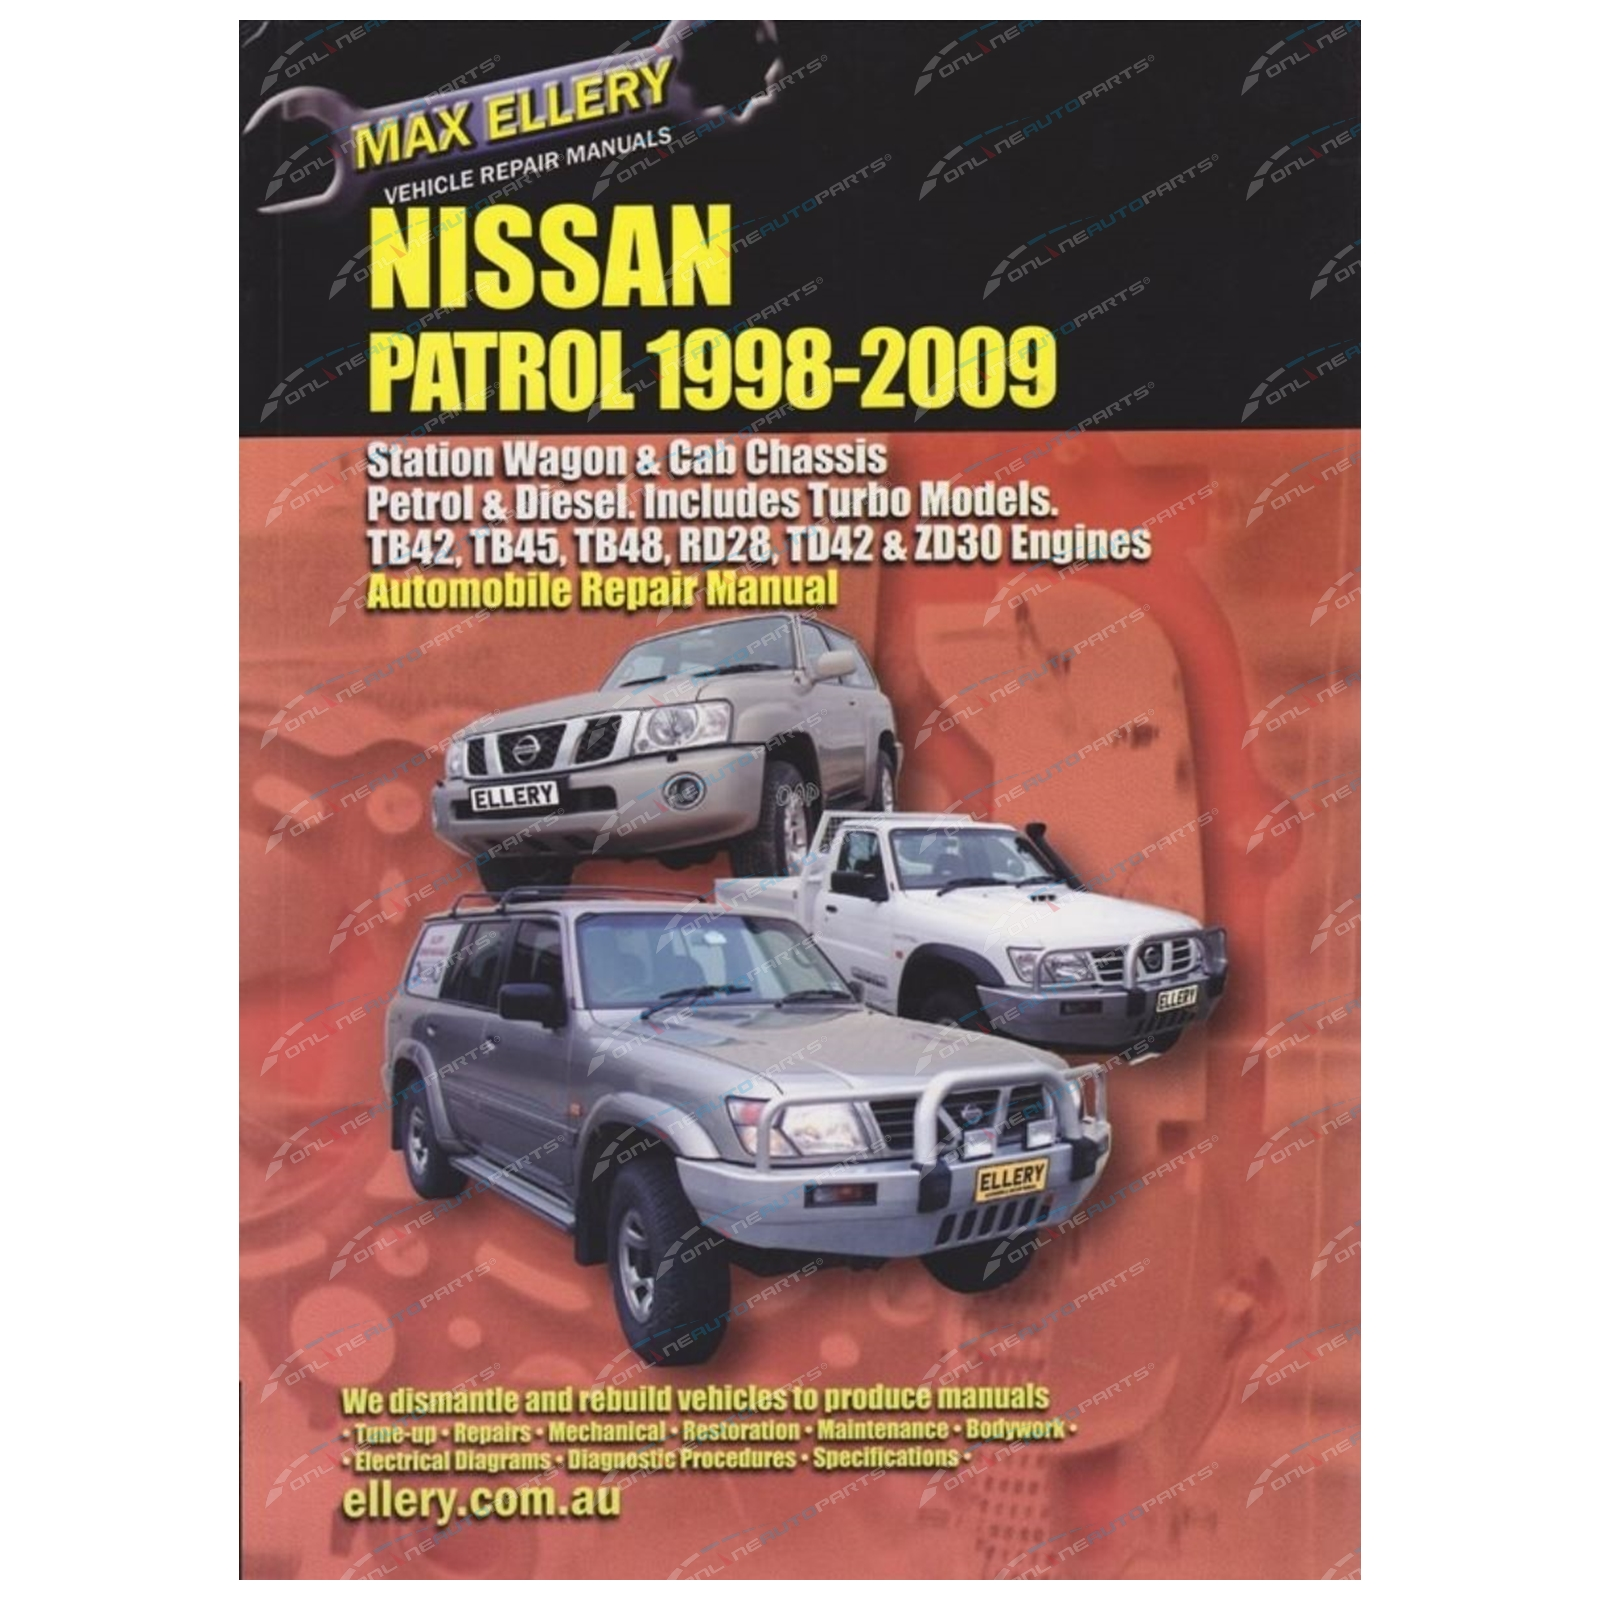 Diesel motors user user manuals book cars user manuals sku pdf006 category instruction manuals array workshop manual book max ellery onlineautoparts rh onlineautoparts com au fandeluxe Image collections